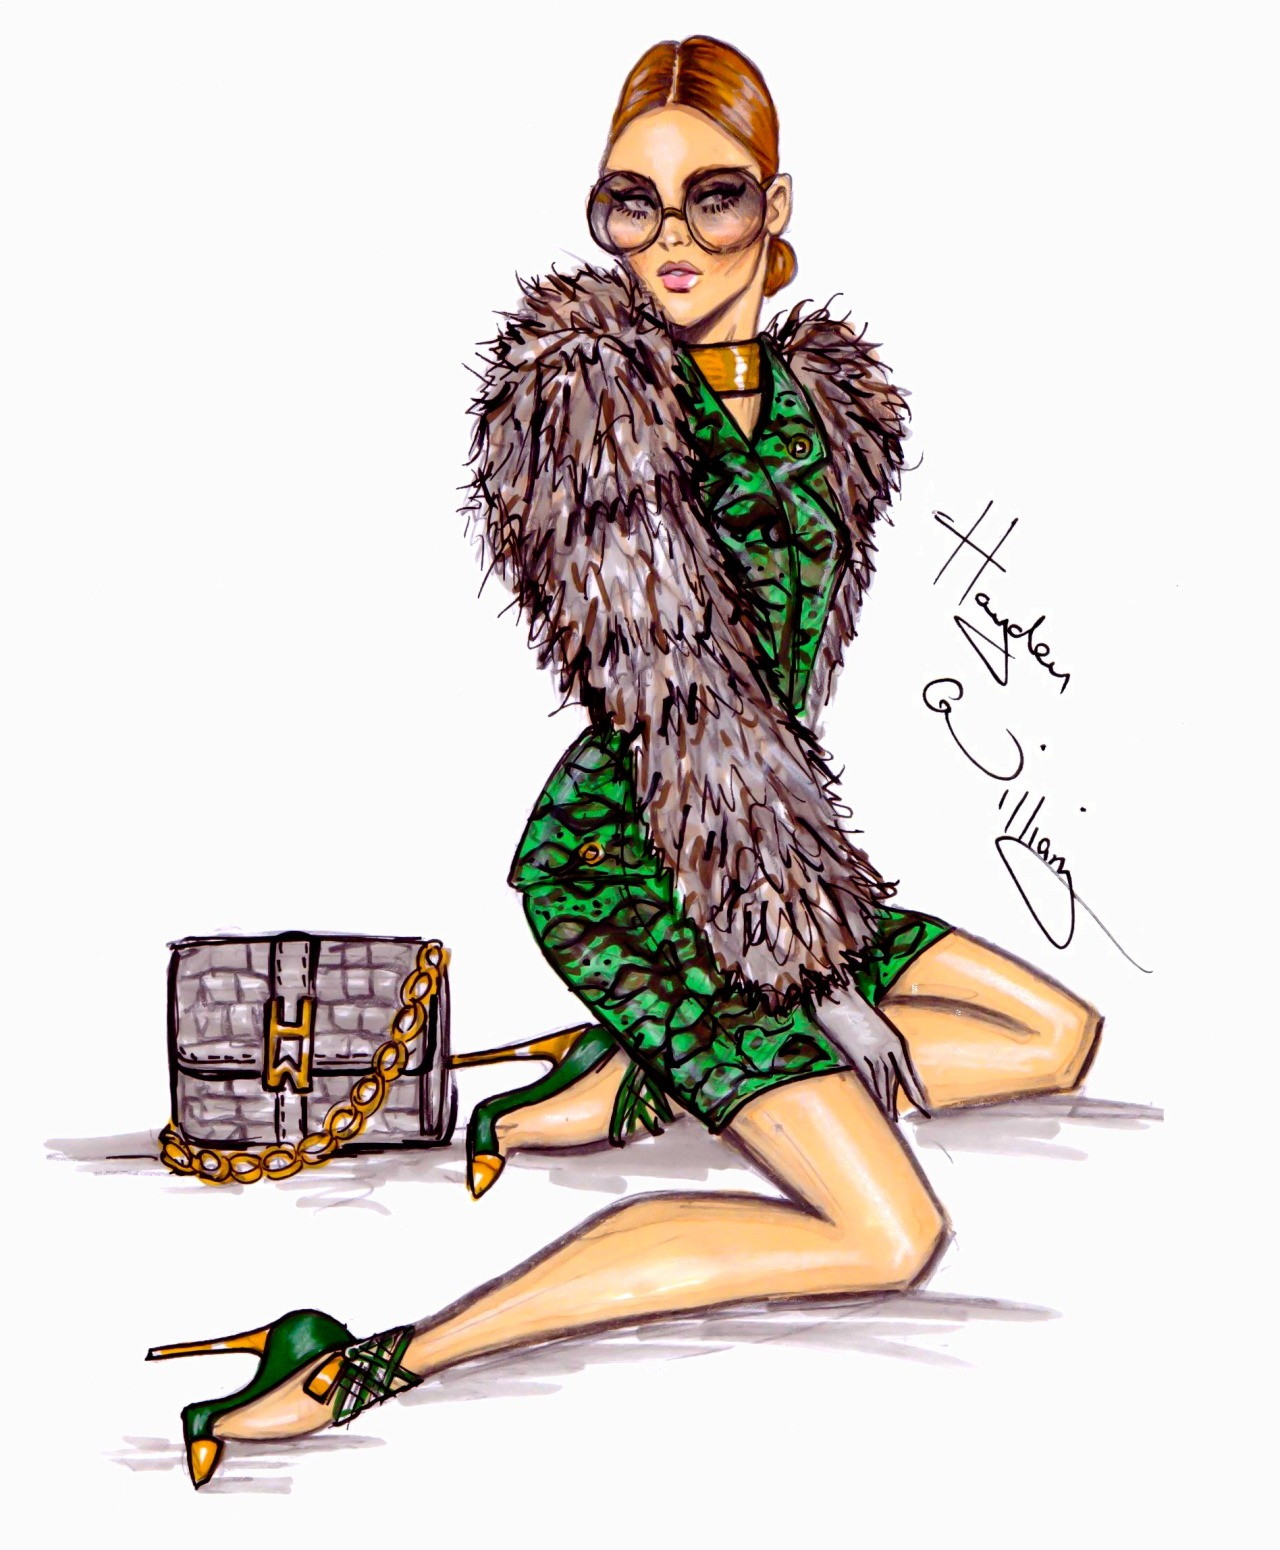 haydenwilliamsillustrations:  'Envied' by Hayden Williams